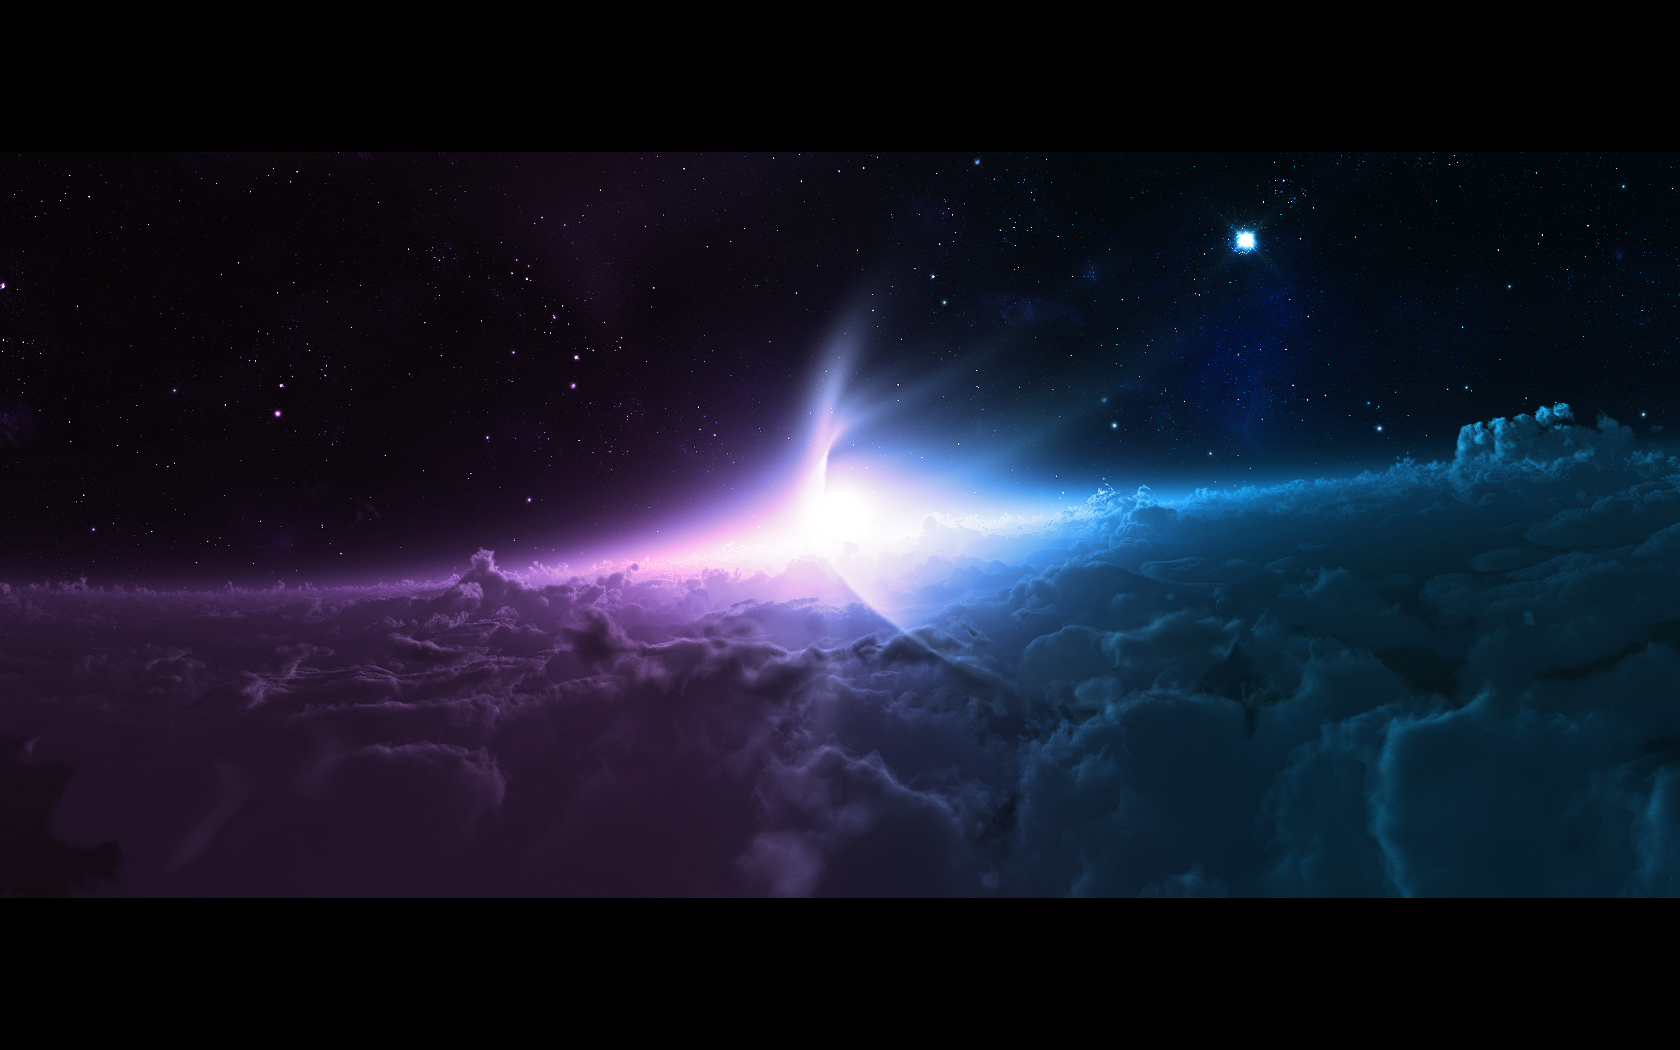 Fantasy Space Wallpapers Space Wallpaper